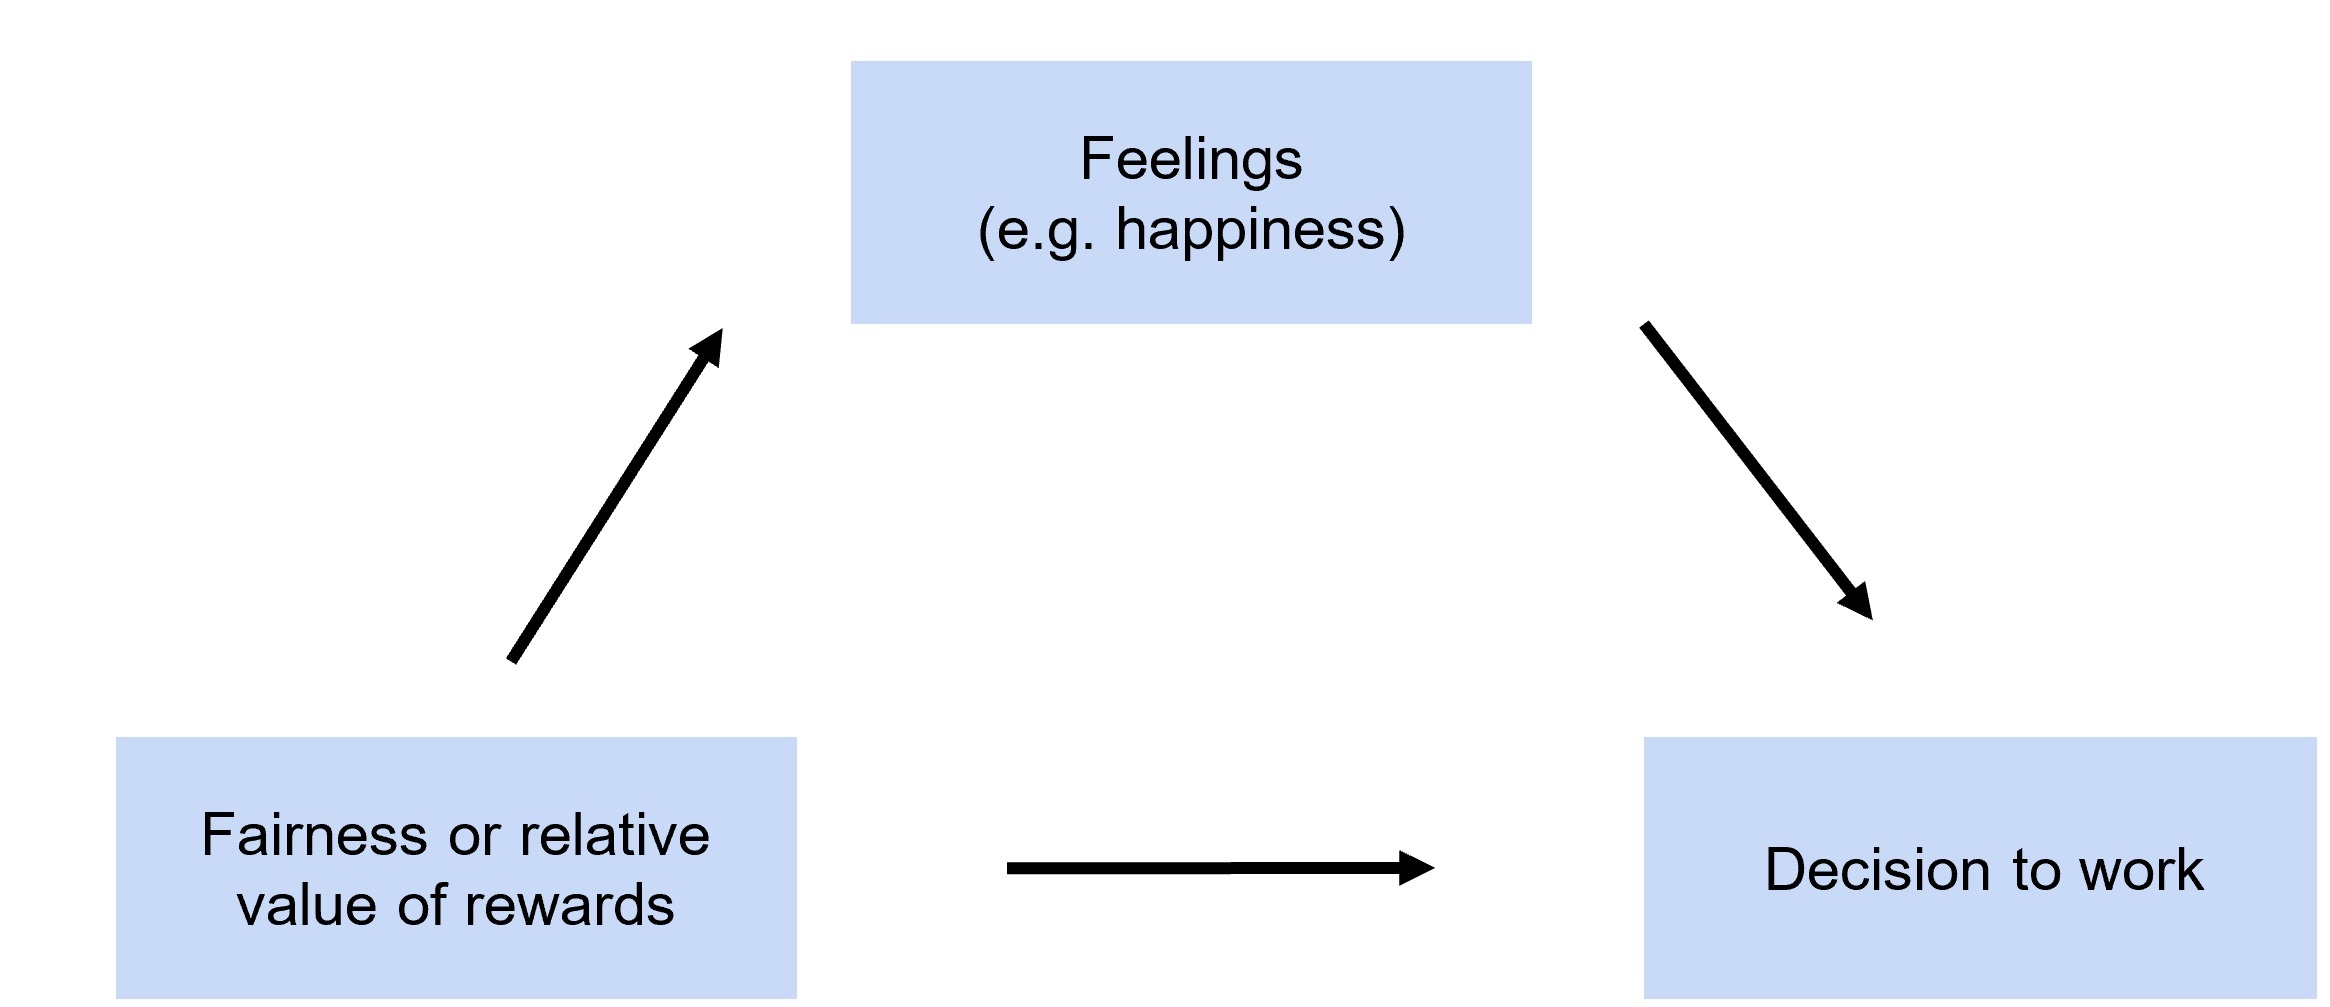 Loop diagram showing how fairness is linked to motivation to work